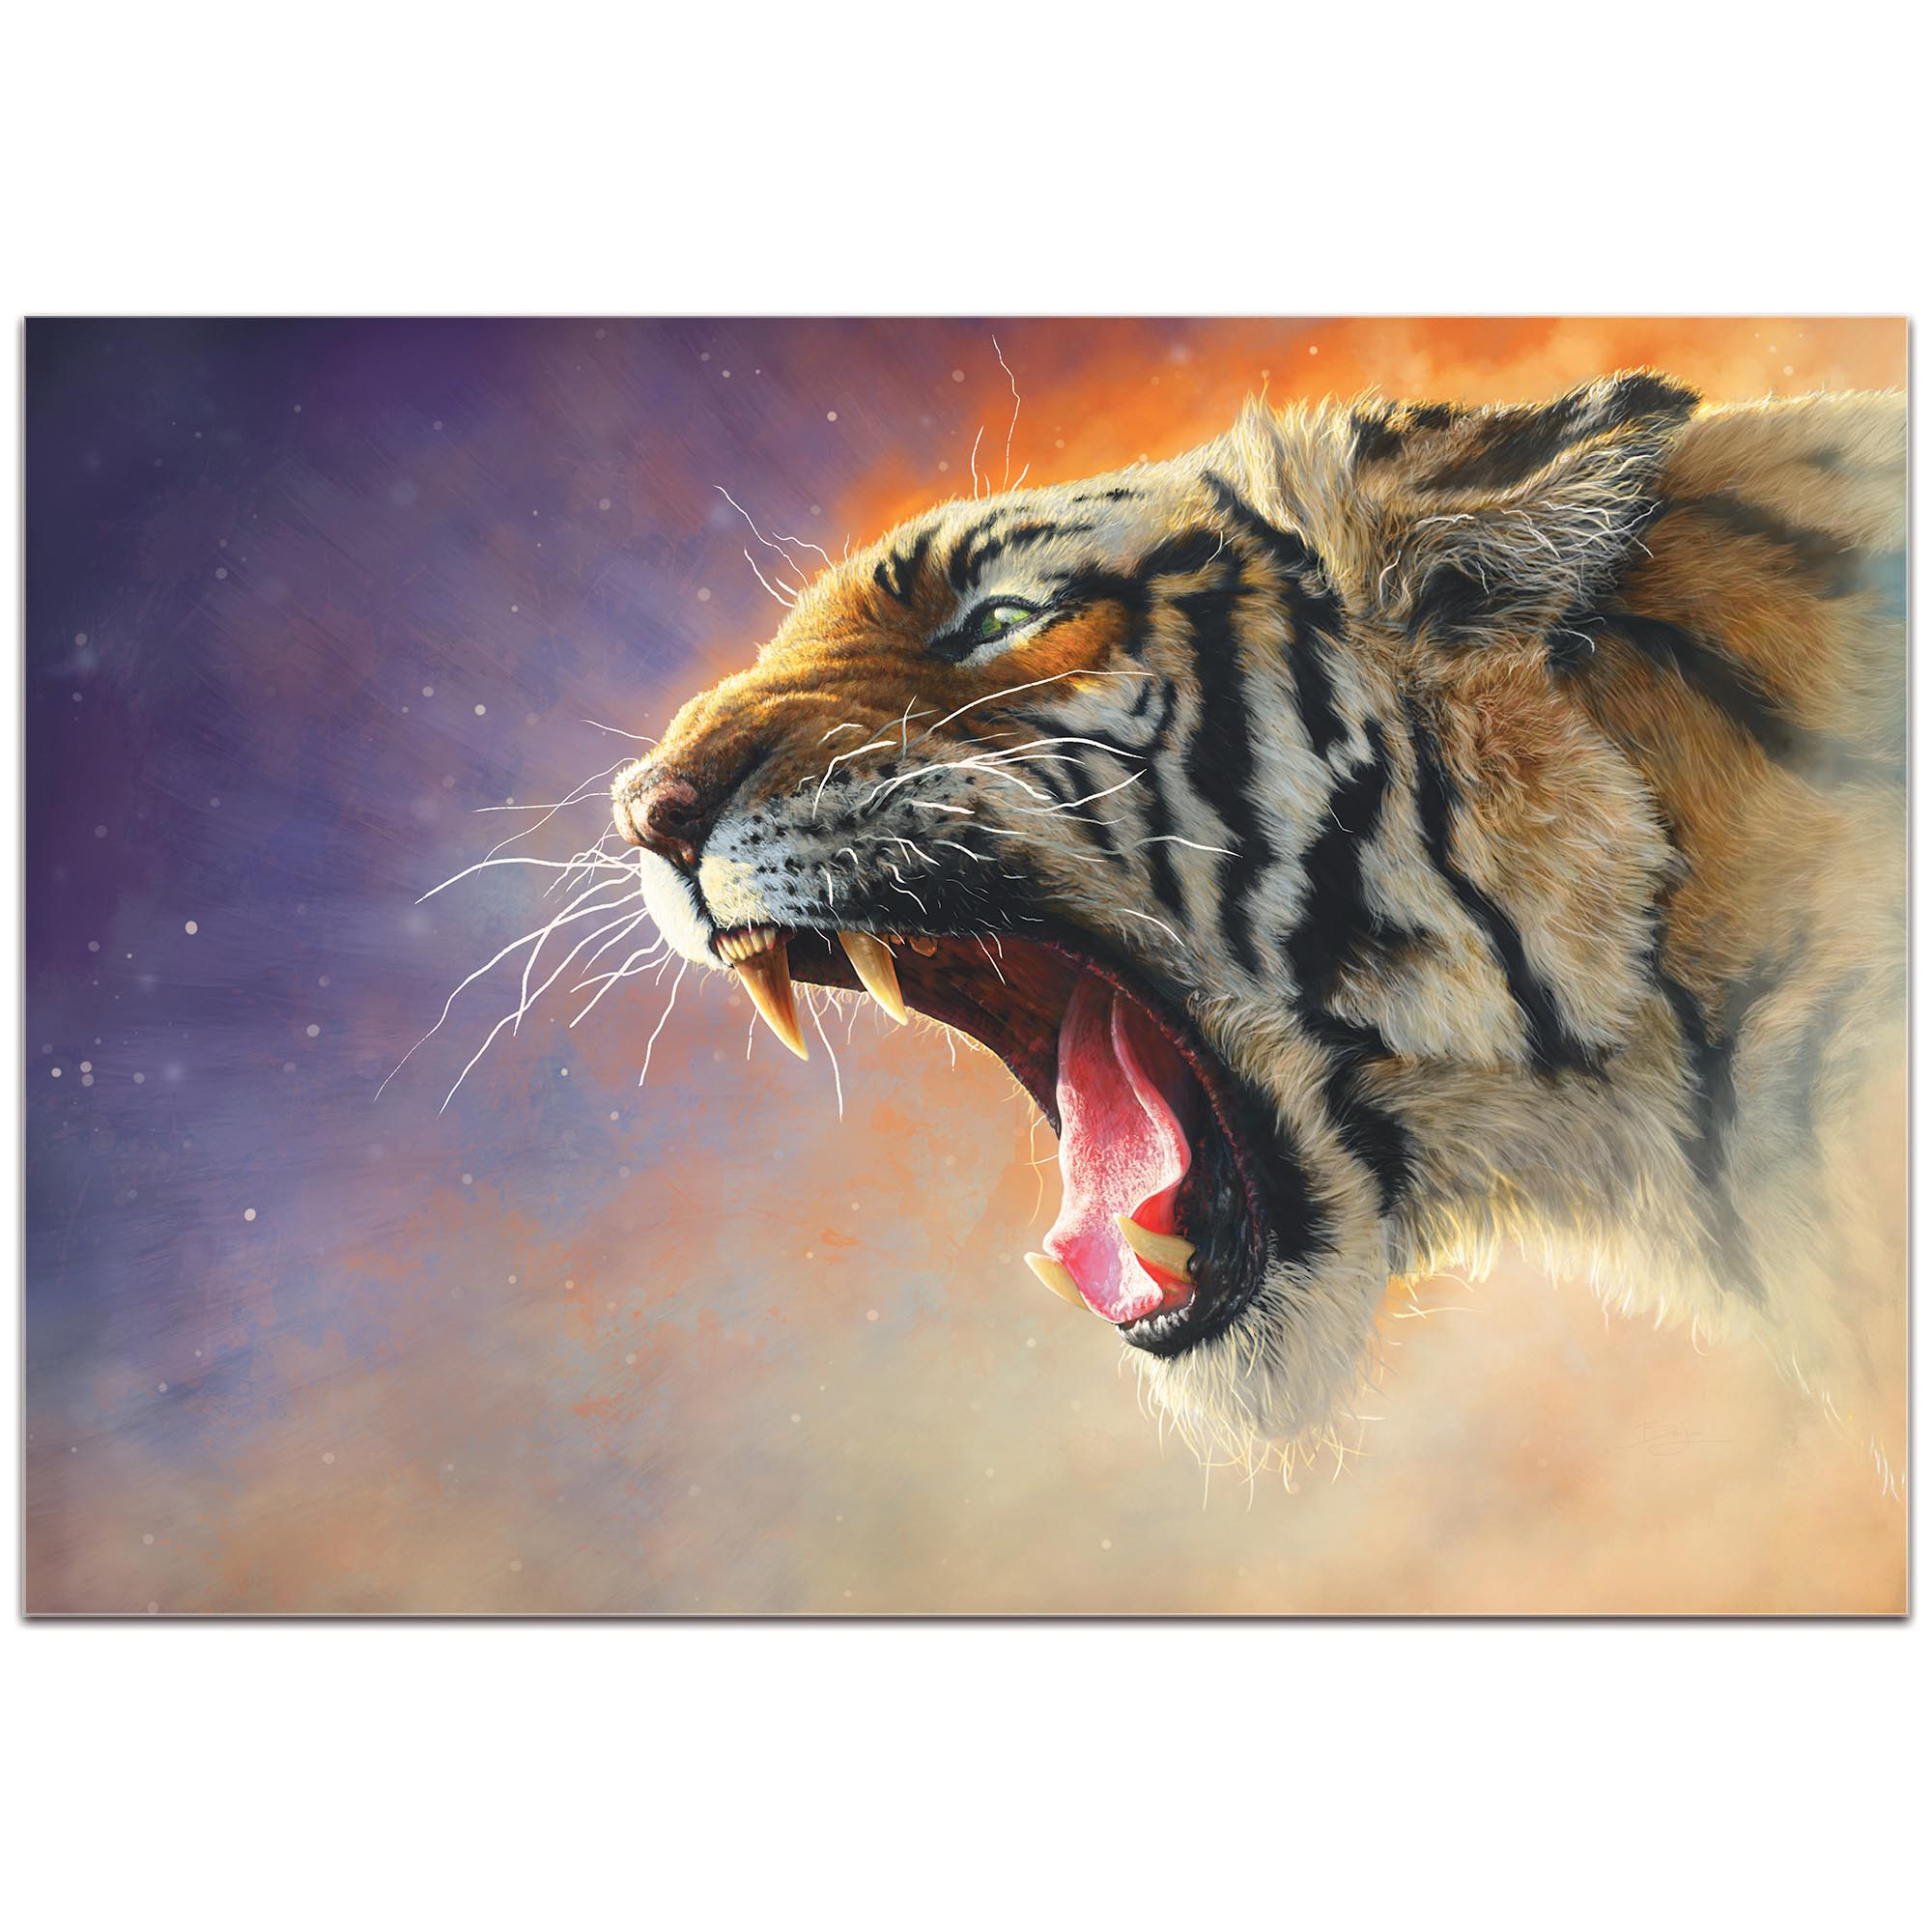 Expressionist Wall Art 'Fear Me' - Wildlife Decor on Metal or Plexiglass - Image 2